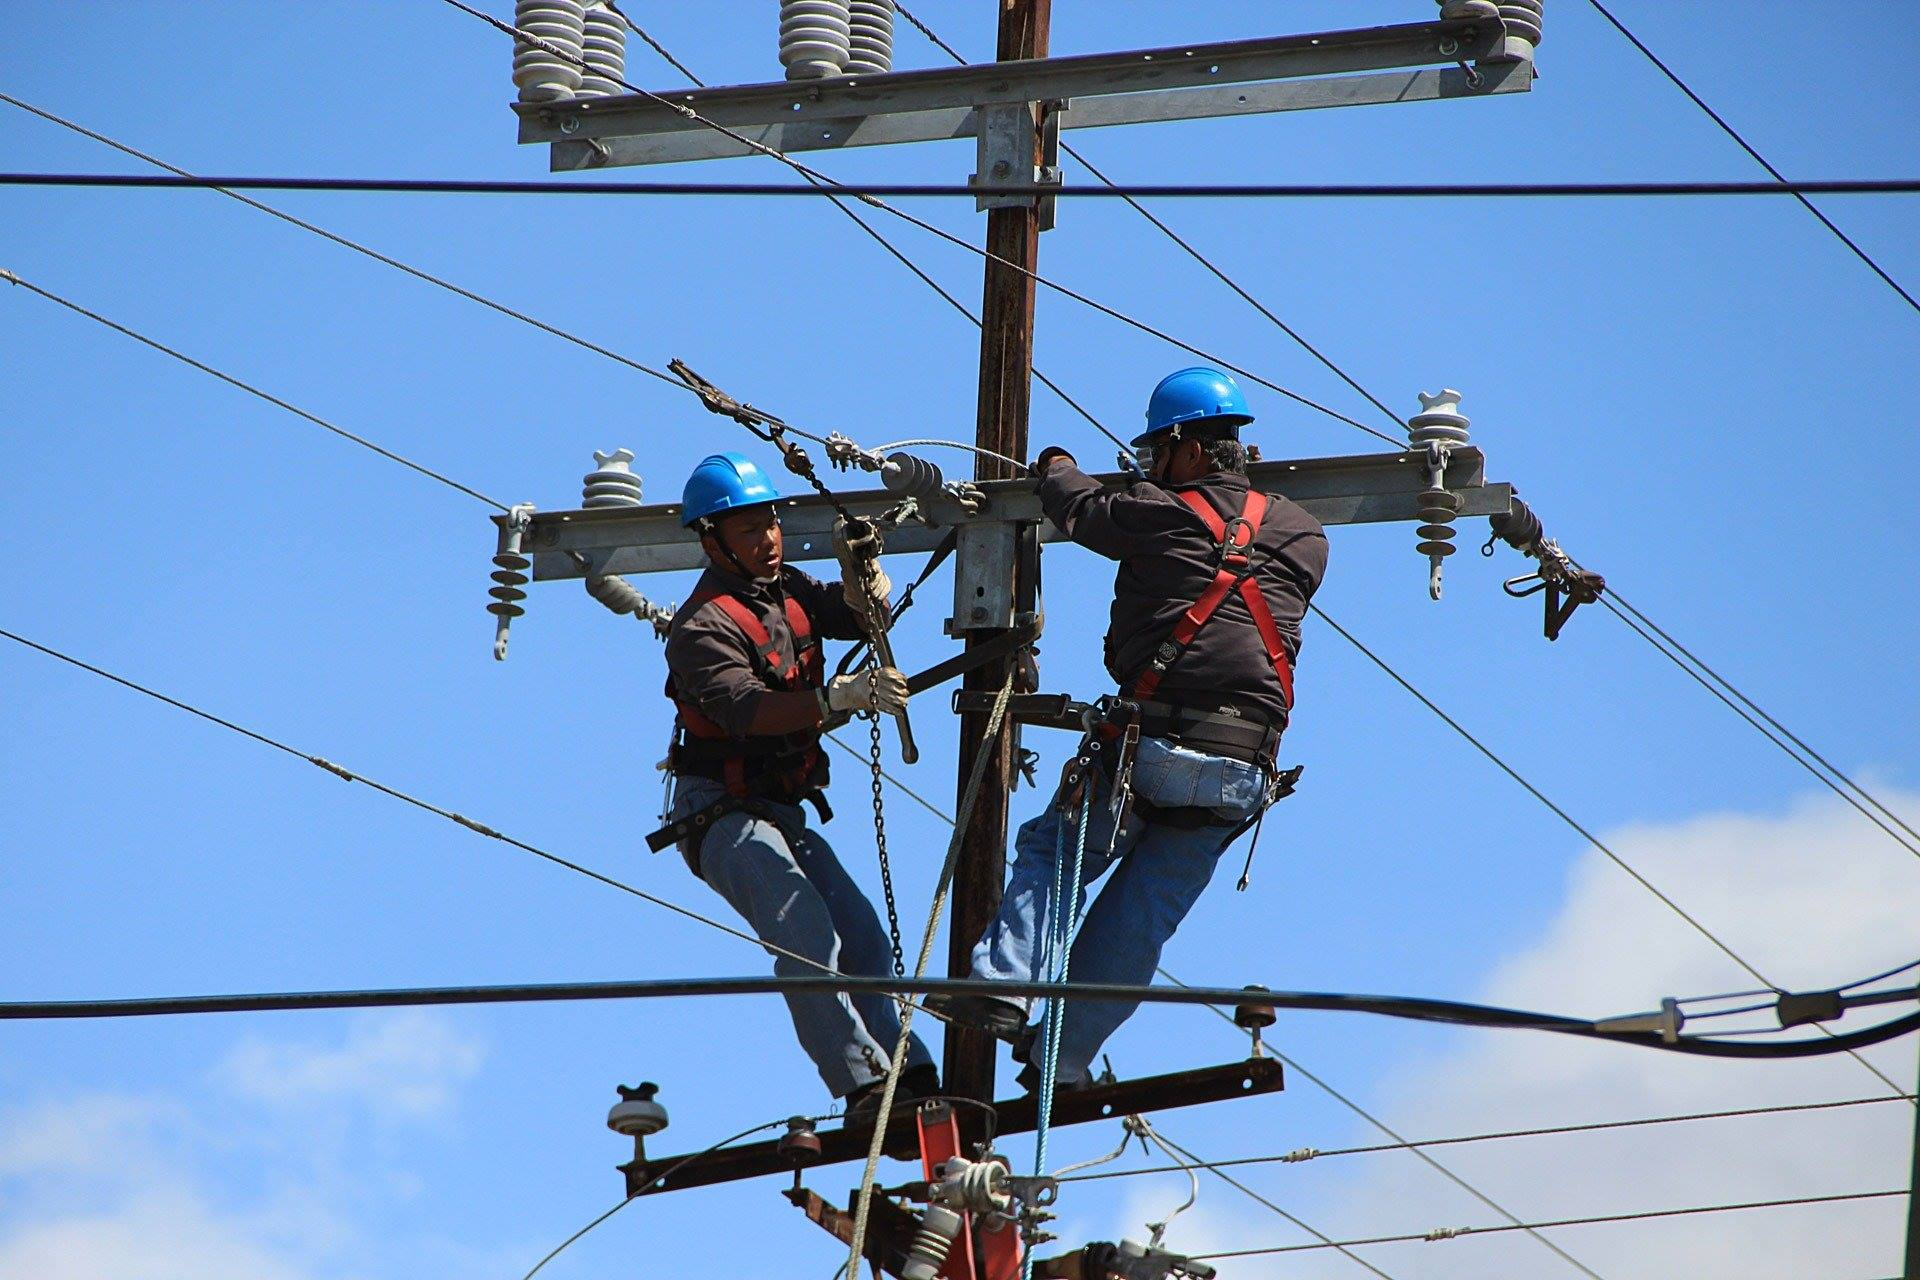 Two electrical workers on a pole